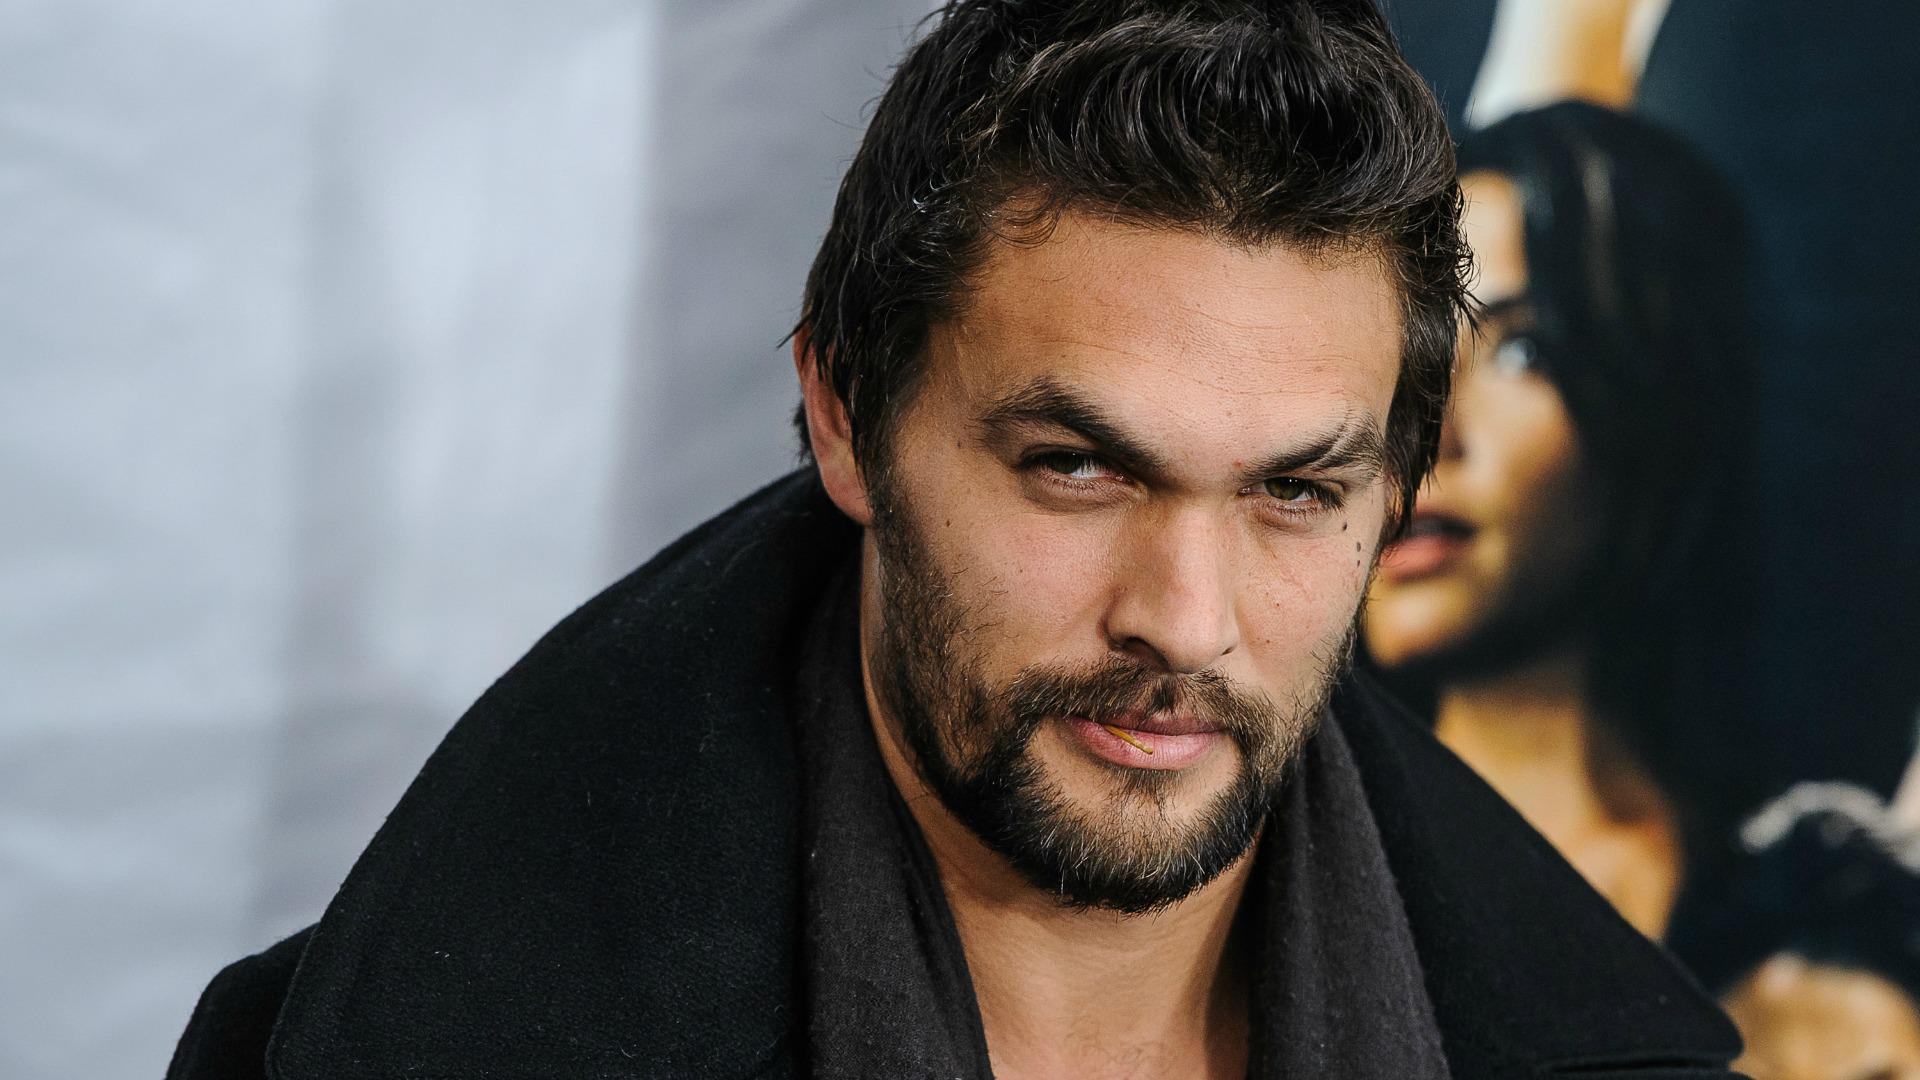 Jason Momoa Wallpapers Images Photos Pictures Backgrounds 1920x1080